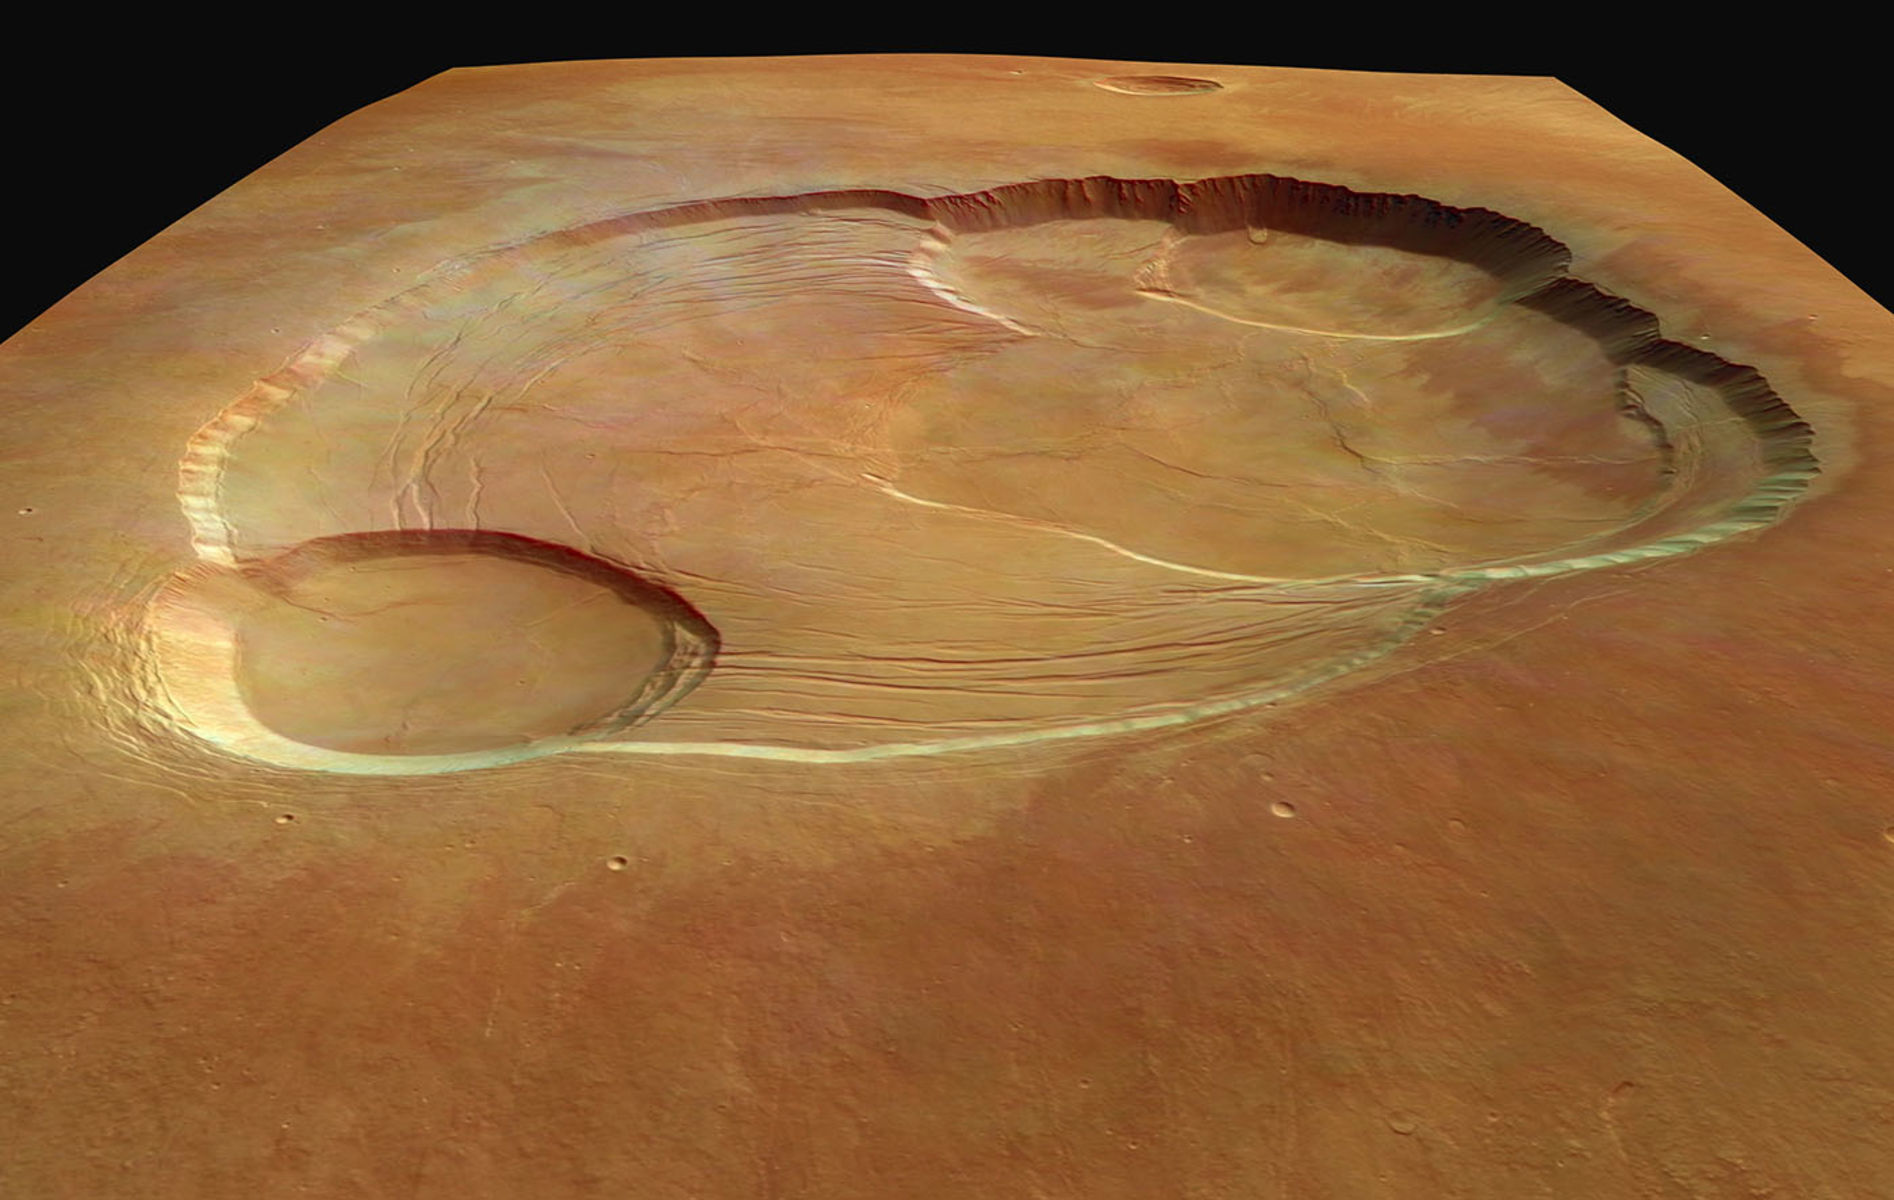 Multi-leveled crater on the surface of Mars.